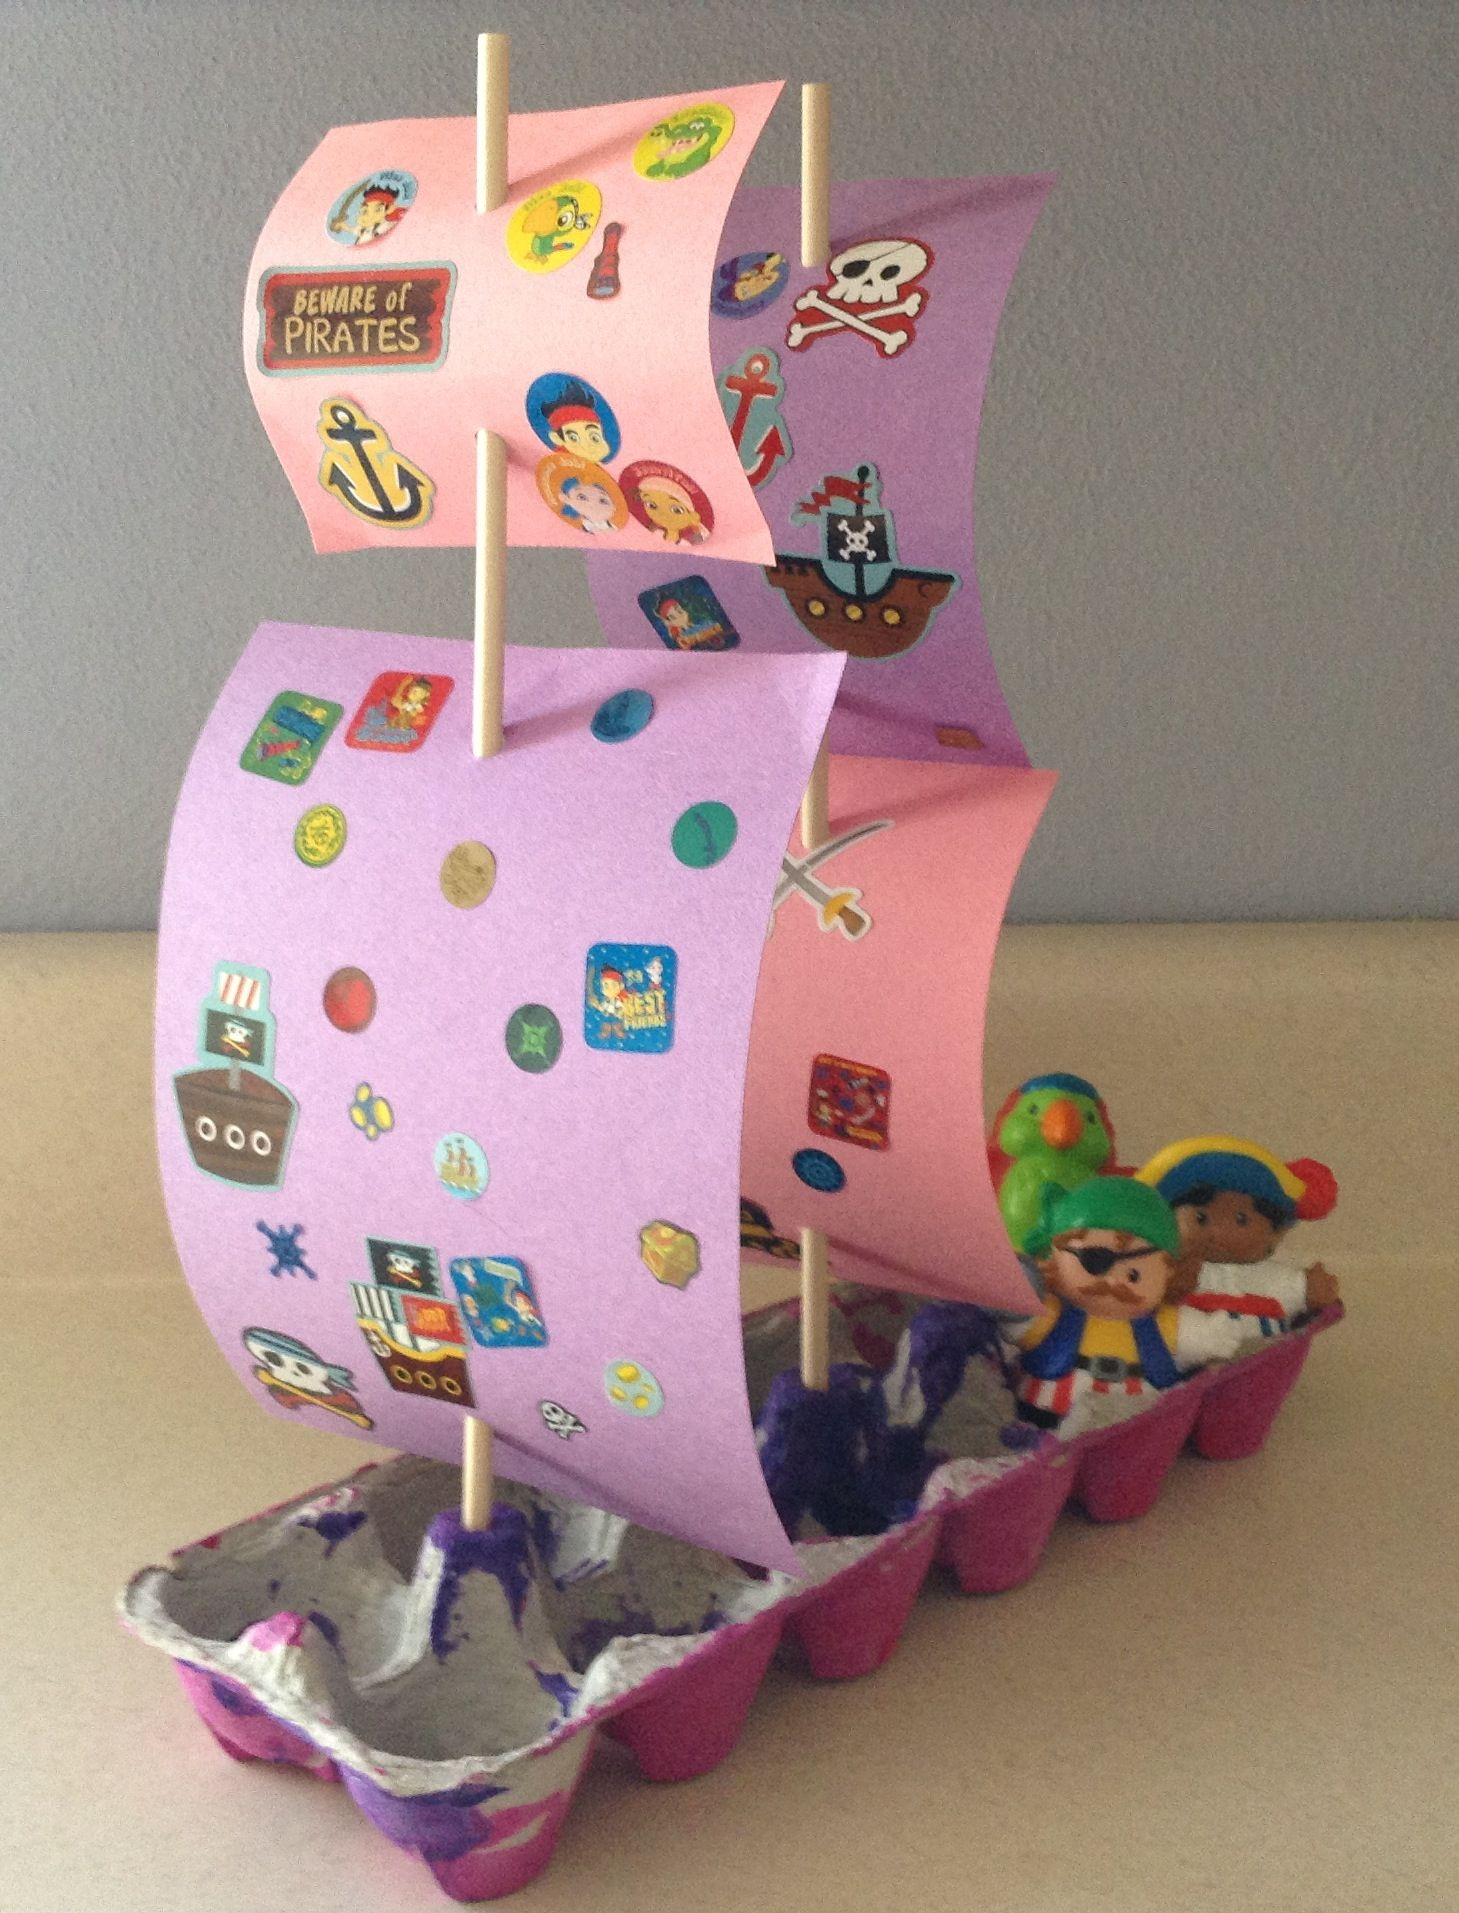 Pirate crafts for toddlers - 3 Creative Egg Carton Crafts For Preschoolers And Kids